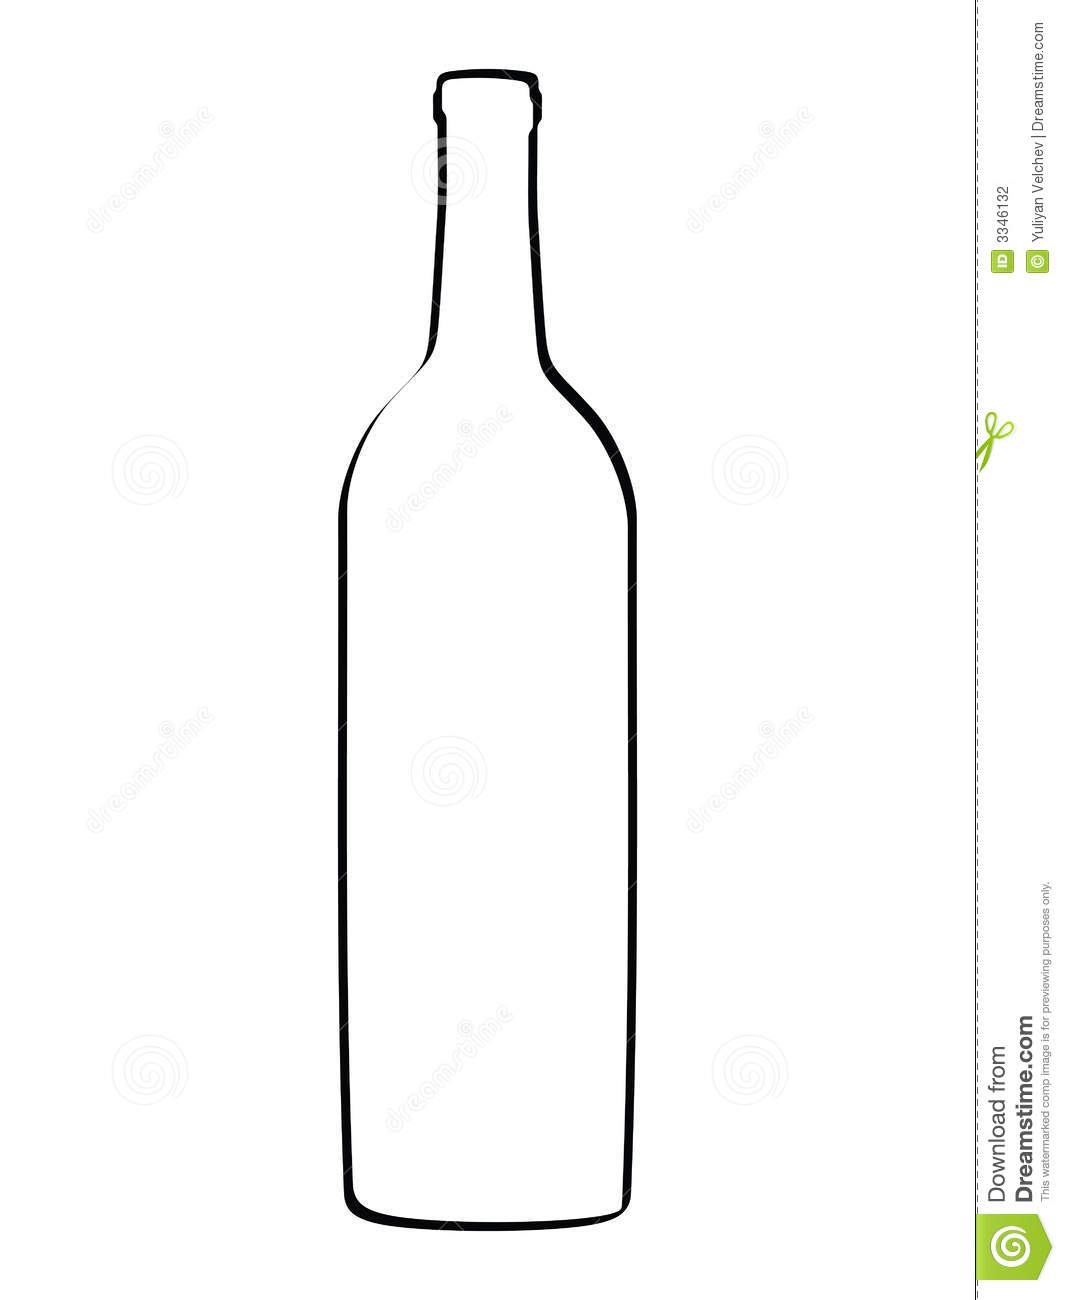 Wine bottle clipart royalty free download 36+ Clipart Wine Bottle | ClipartLook royalty free download